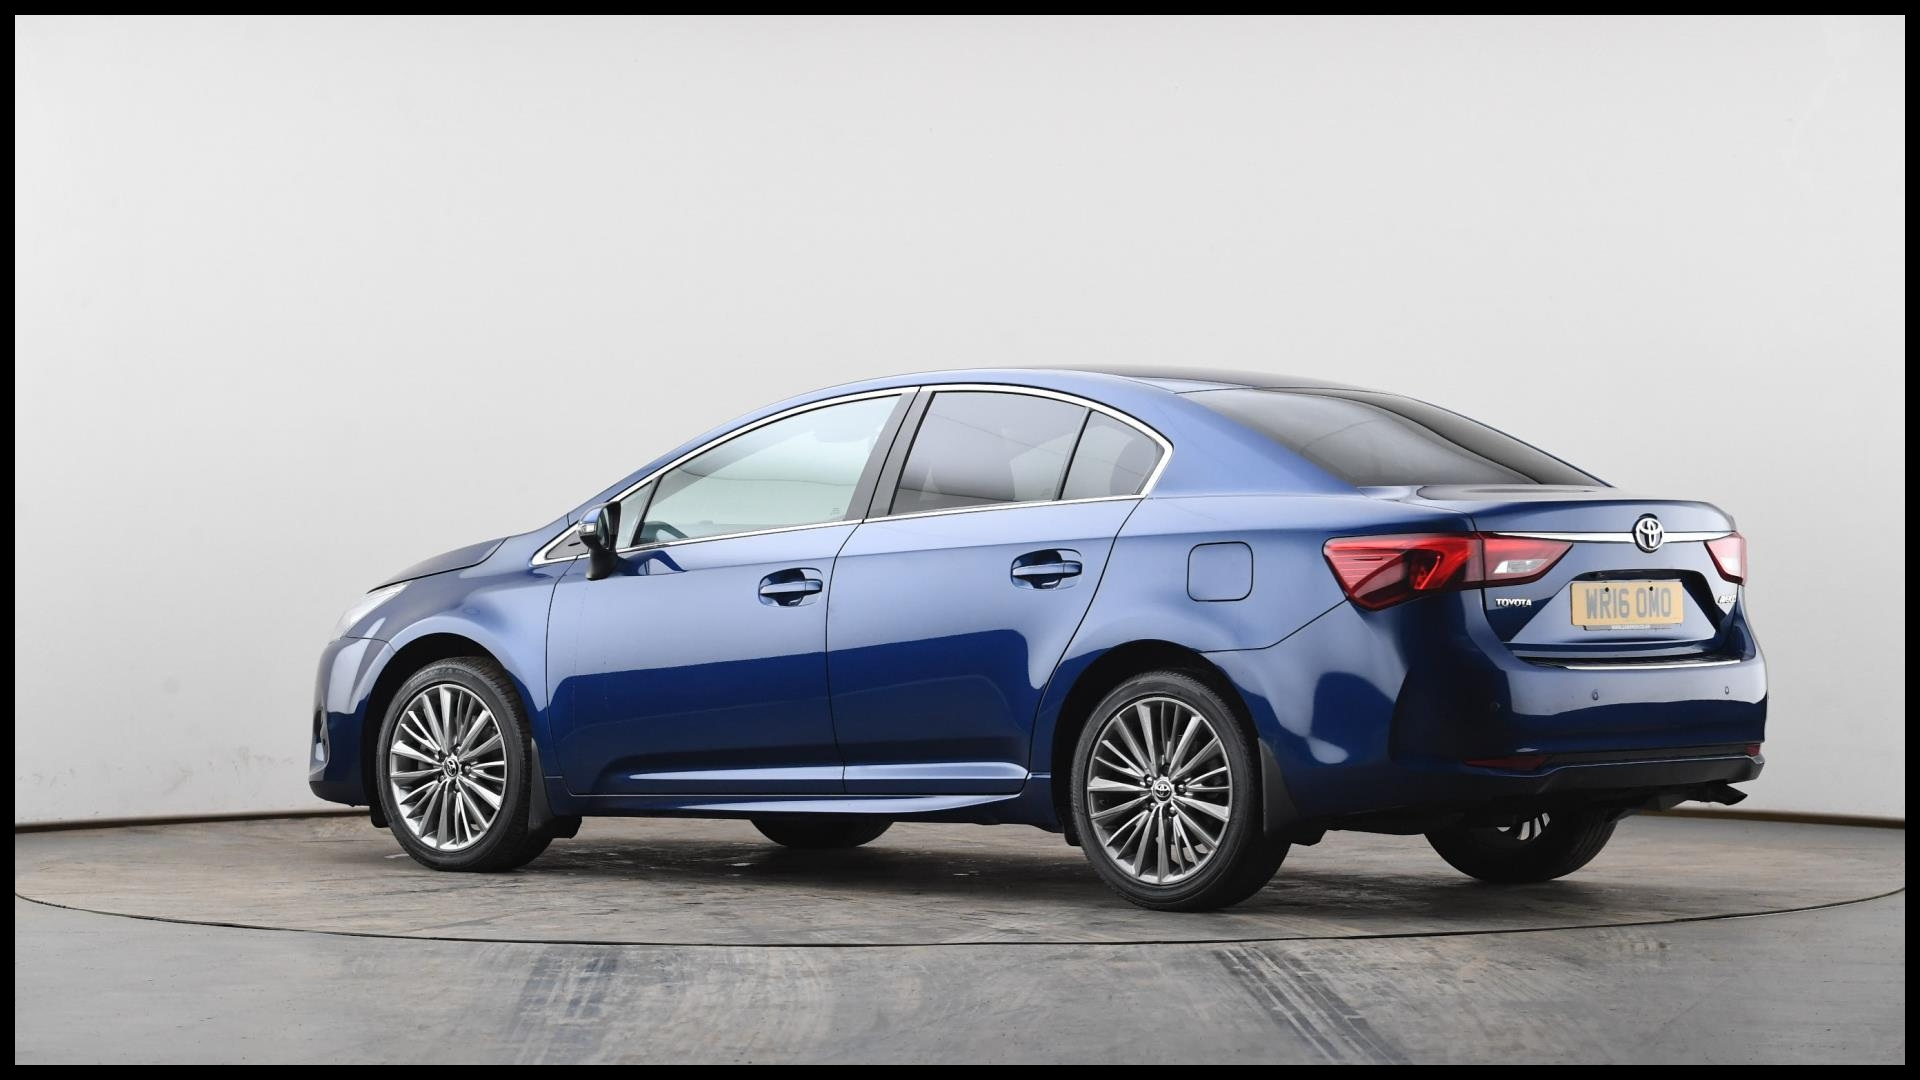 News Used toyota Avensis 2 0d Excel 4dr Blue Wr16omo Redesign